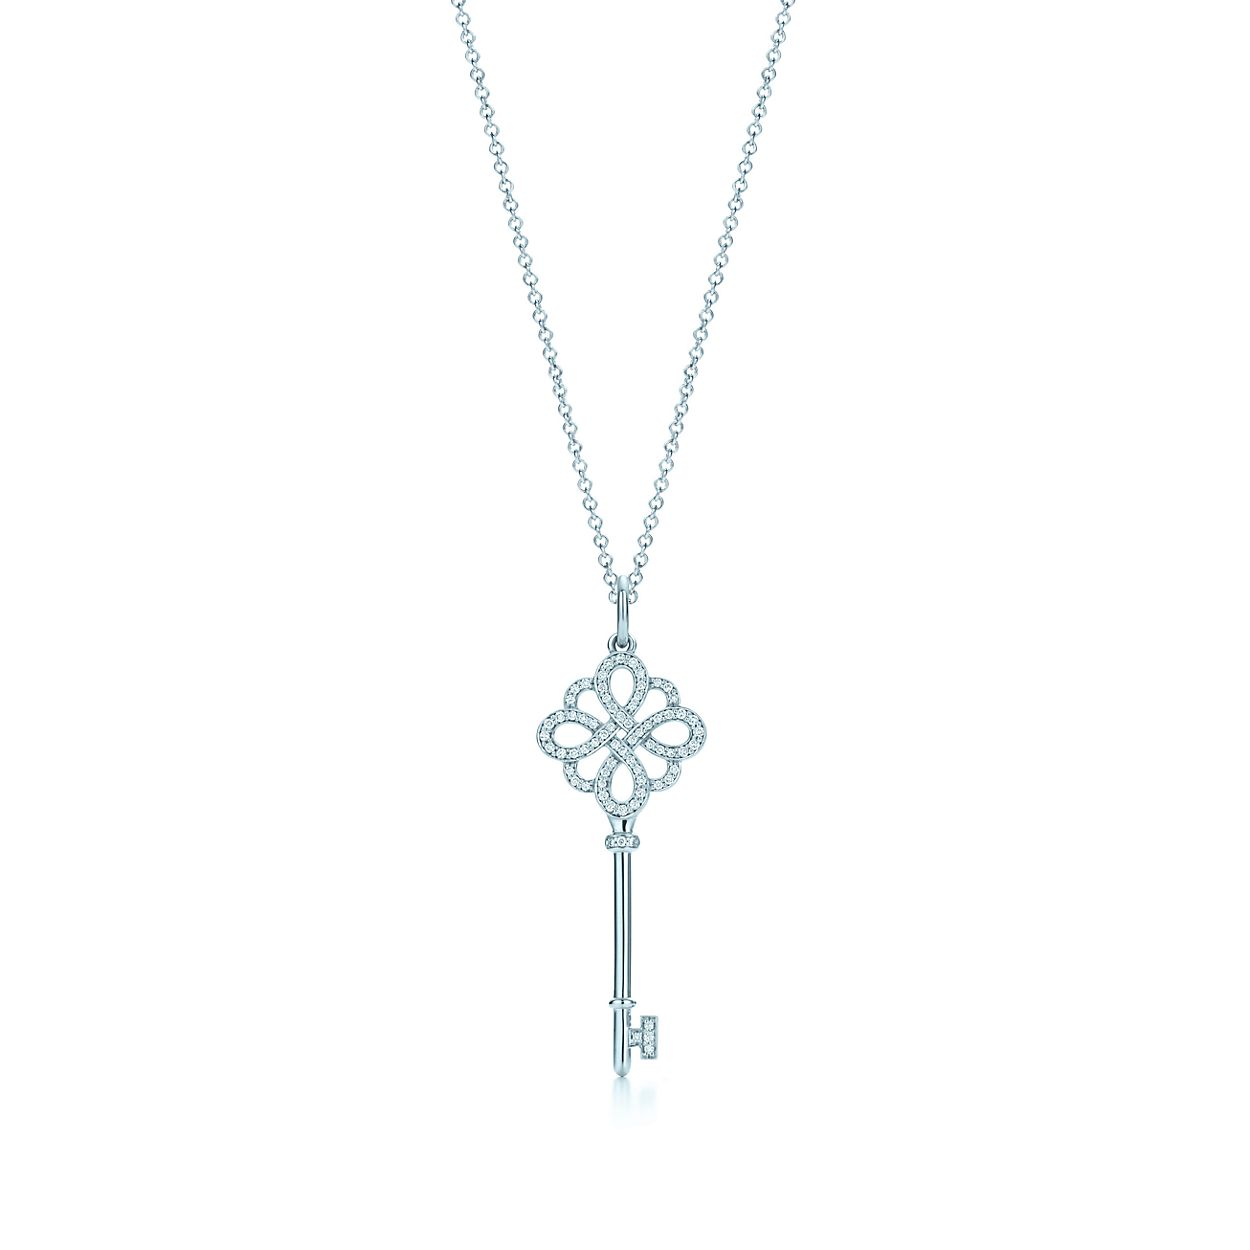 Tiffany keys knot key pendant in 18k white gold with diamonds on a tiffany keysknot key pendant aloadofball Image collections